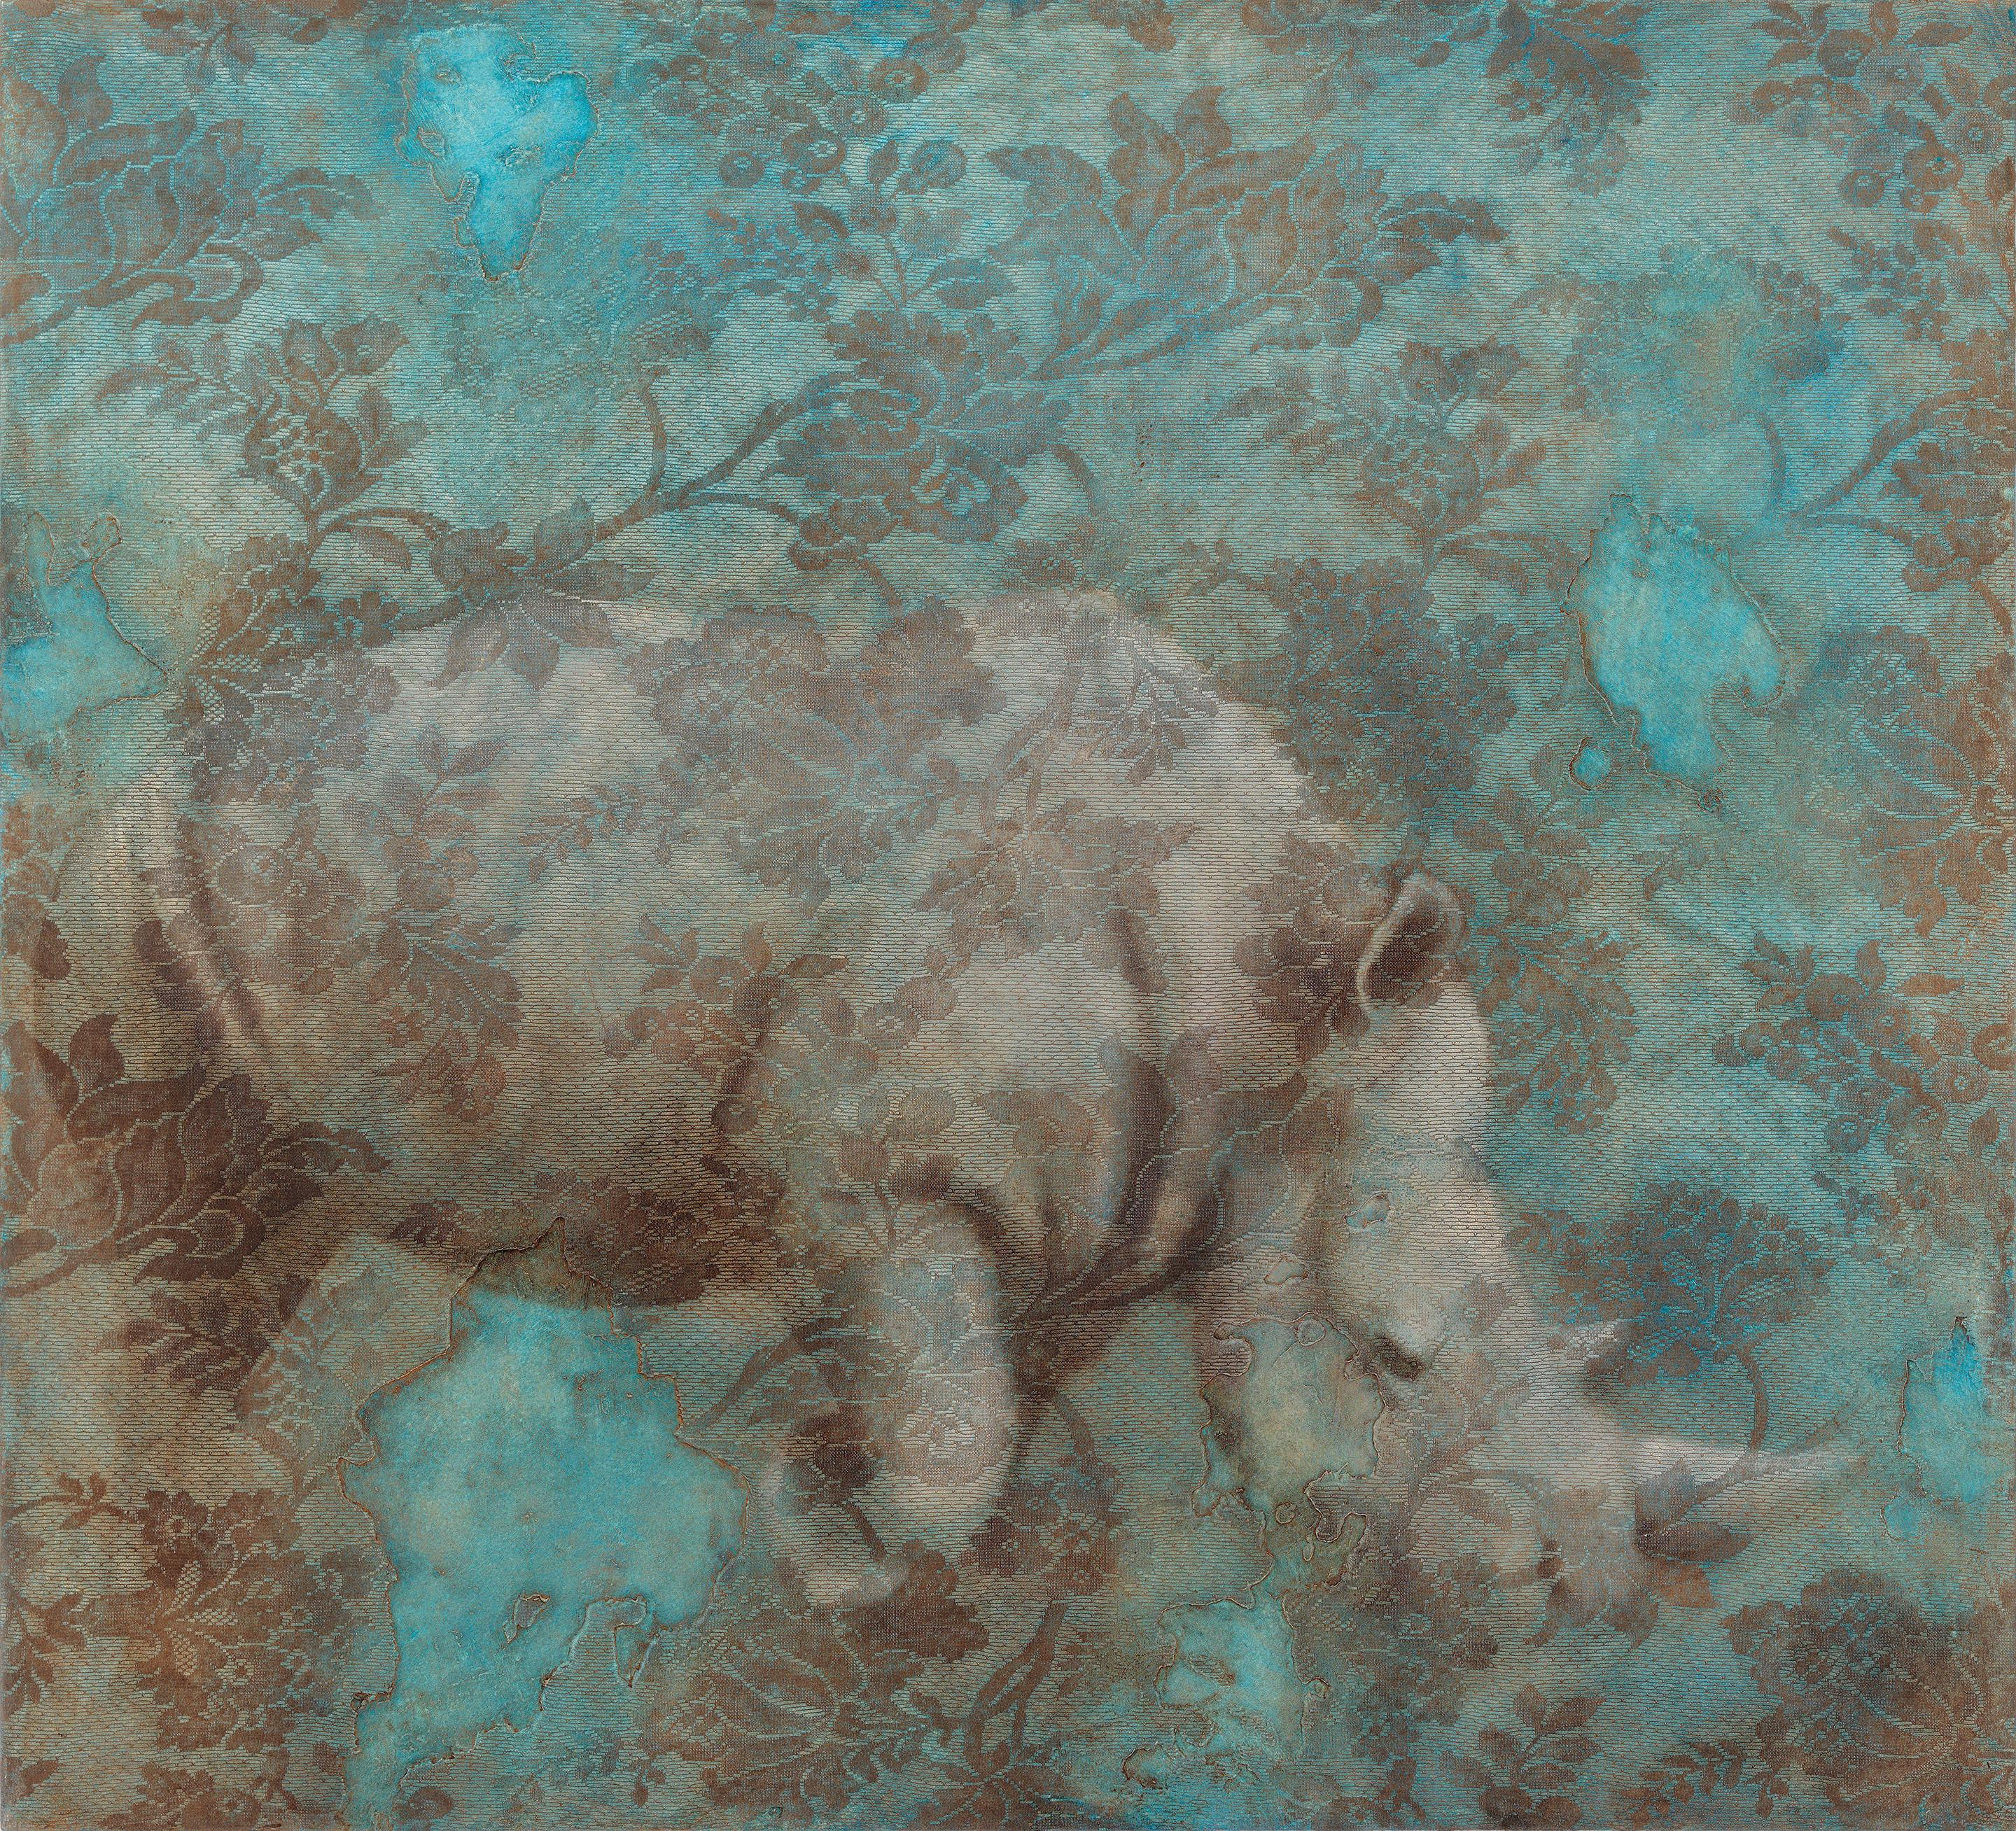 TRANSFORMATION - light blue painting of animal (rhinoceros) with floral pattern